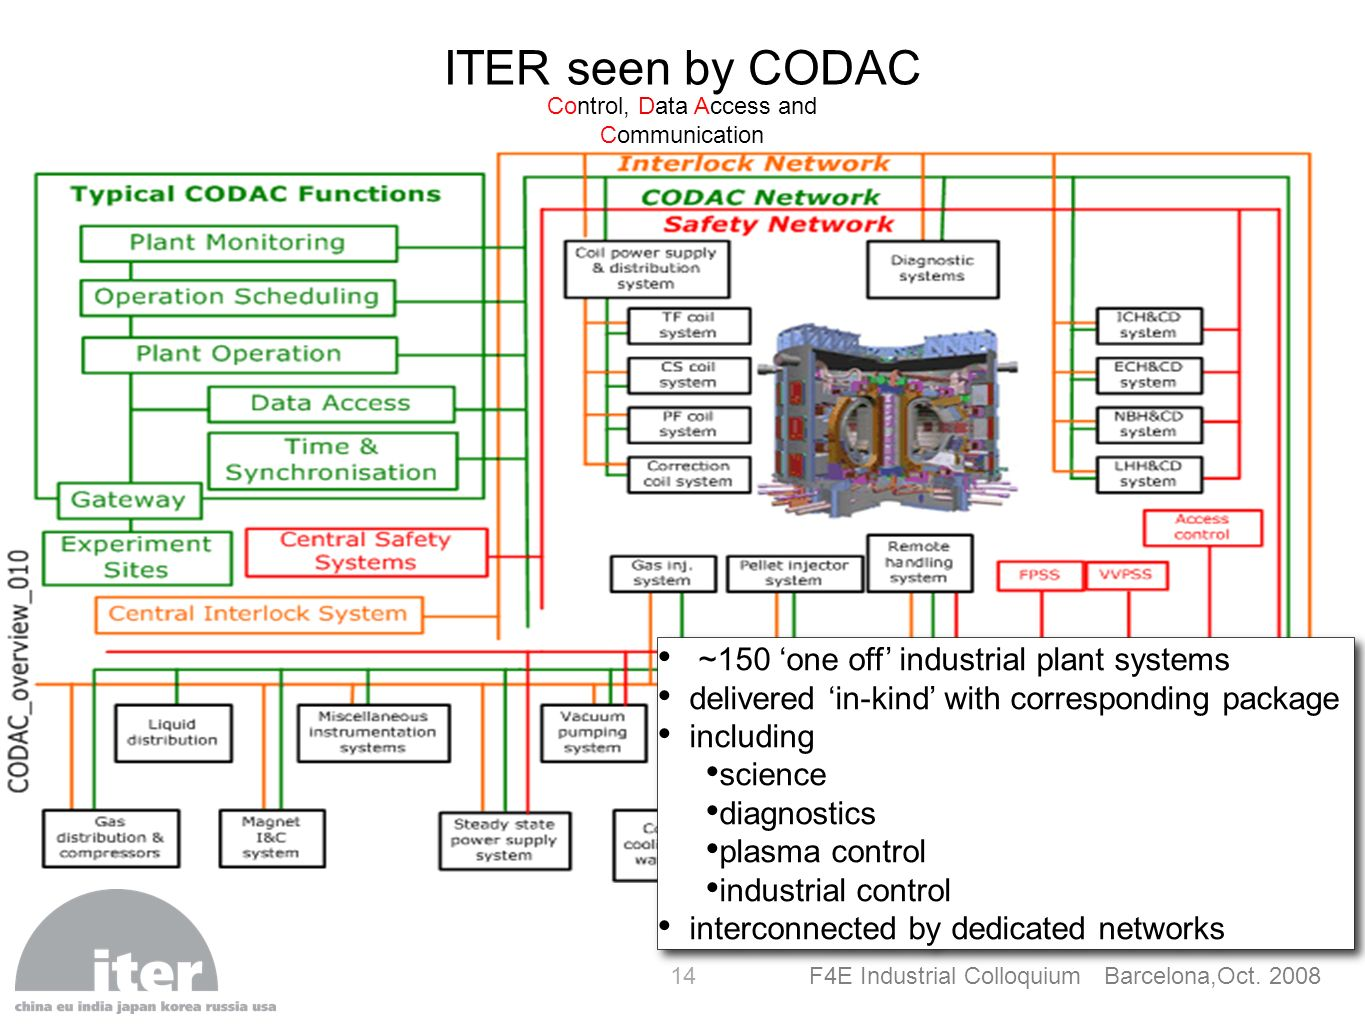 F4E Industrial Colloquium Barcelona,Oct. 2008 14 ITER seen by CODAC Control, Data Access and Communication ~150 one off industrial plant systems deliv